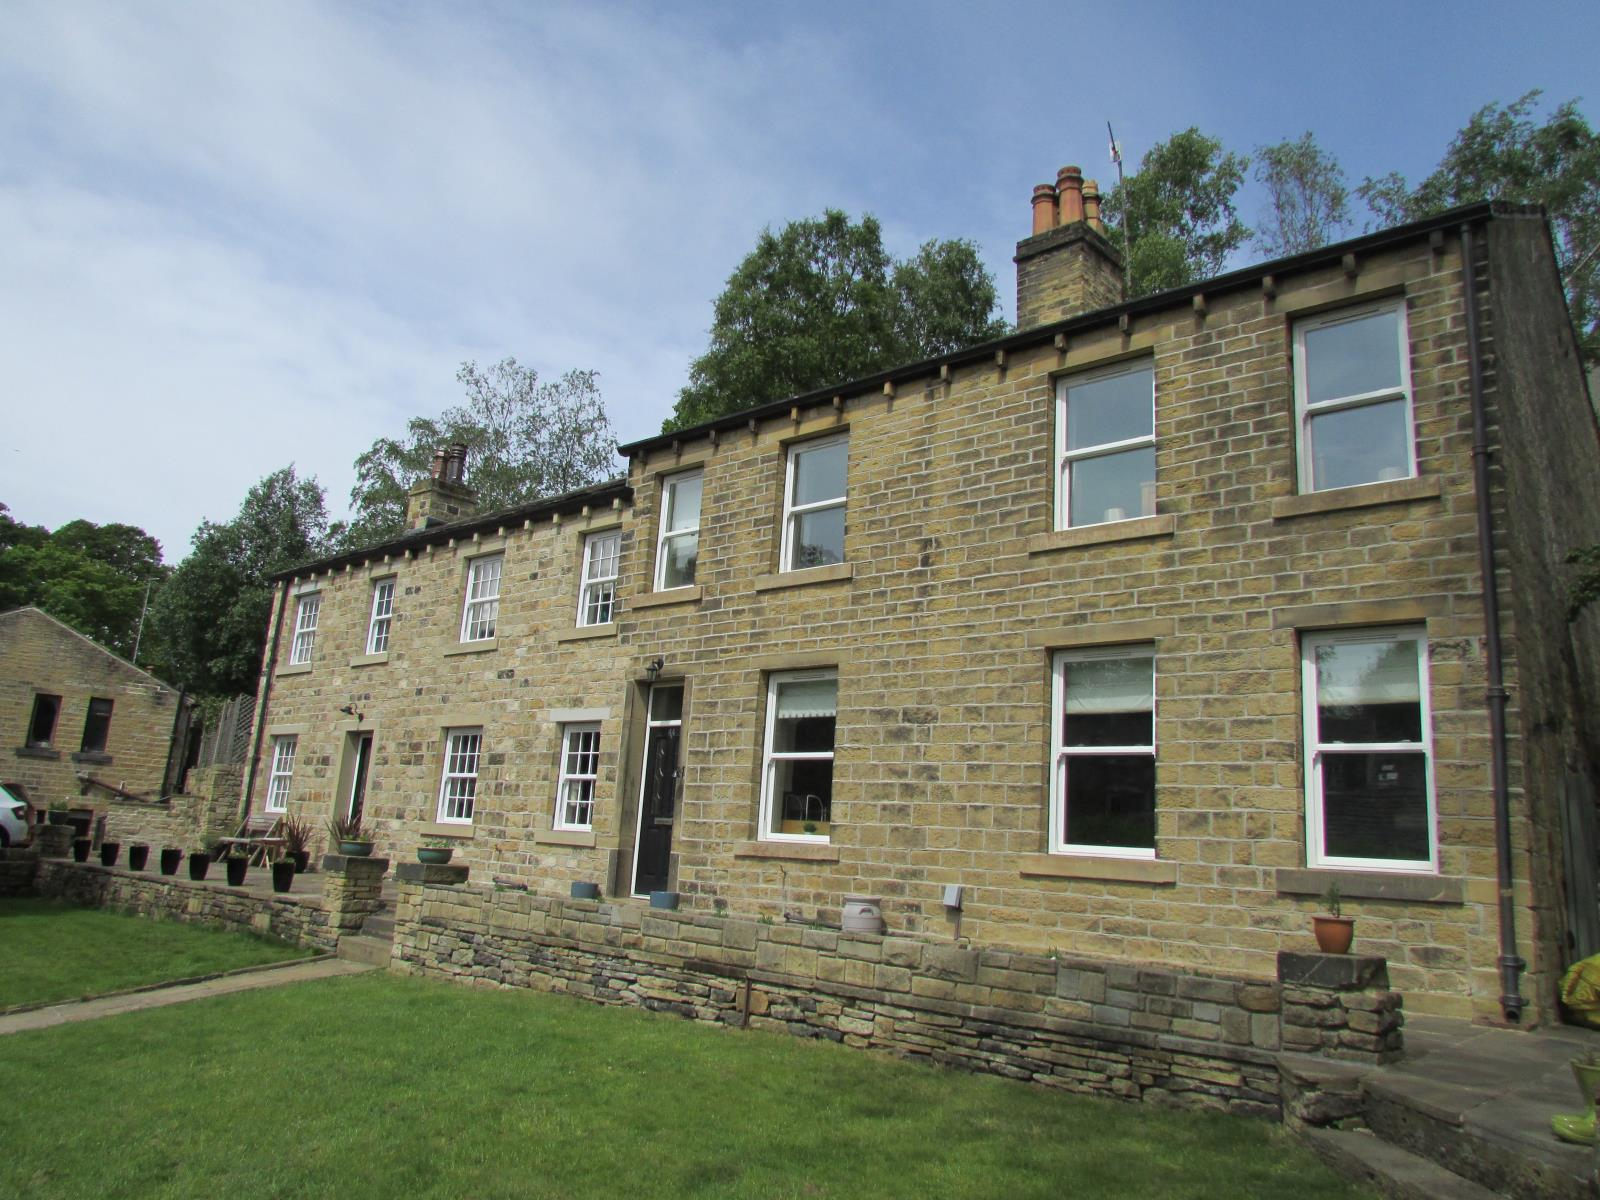 44 Thirstin Road, Honley, Holmfirth, HD9 6JG